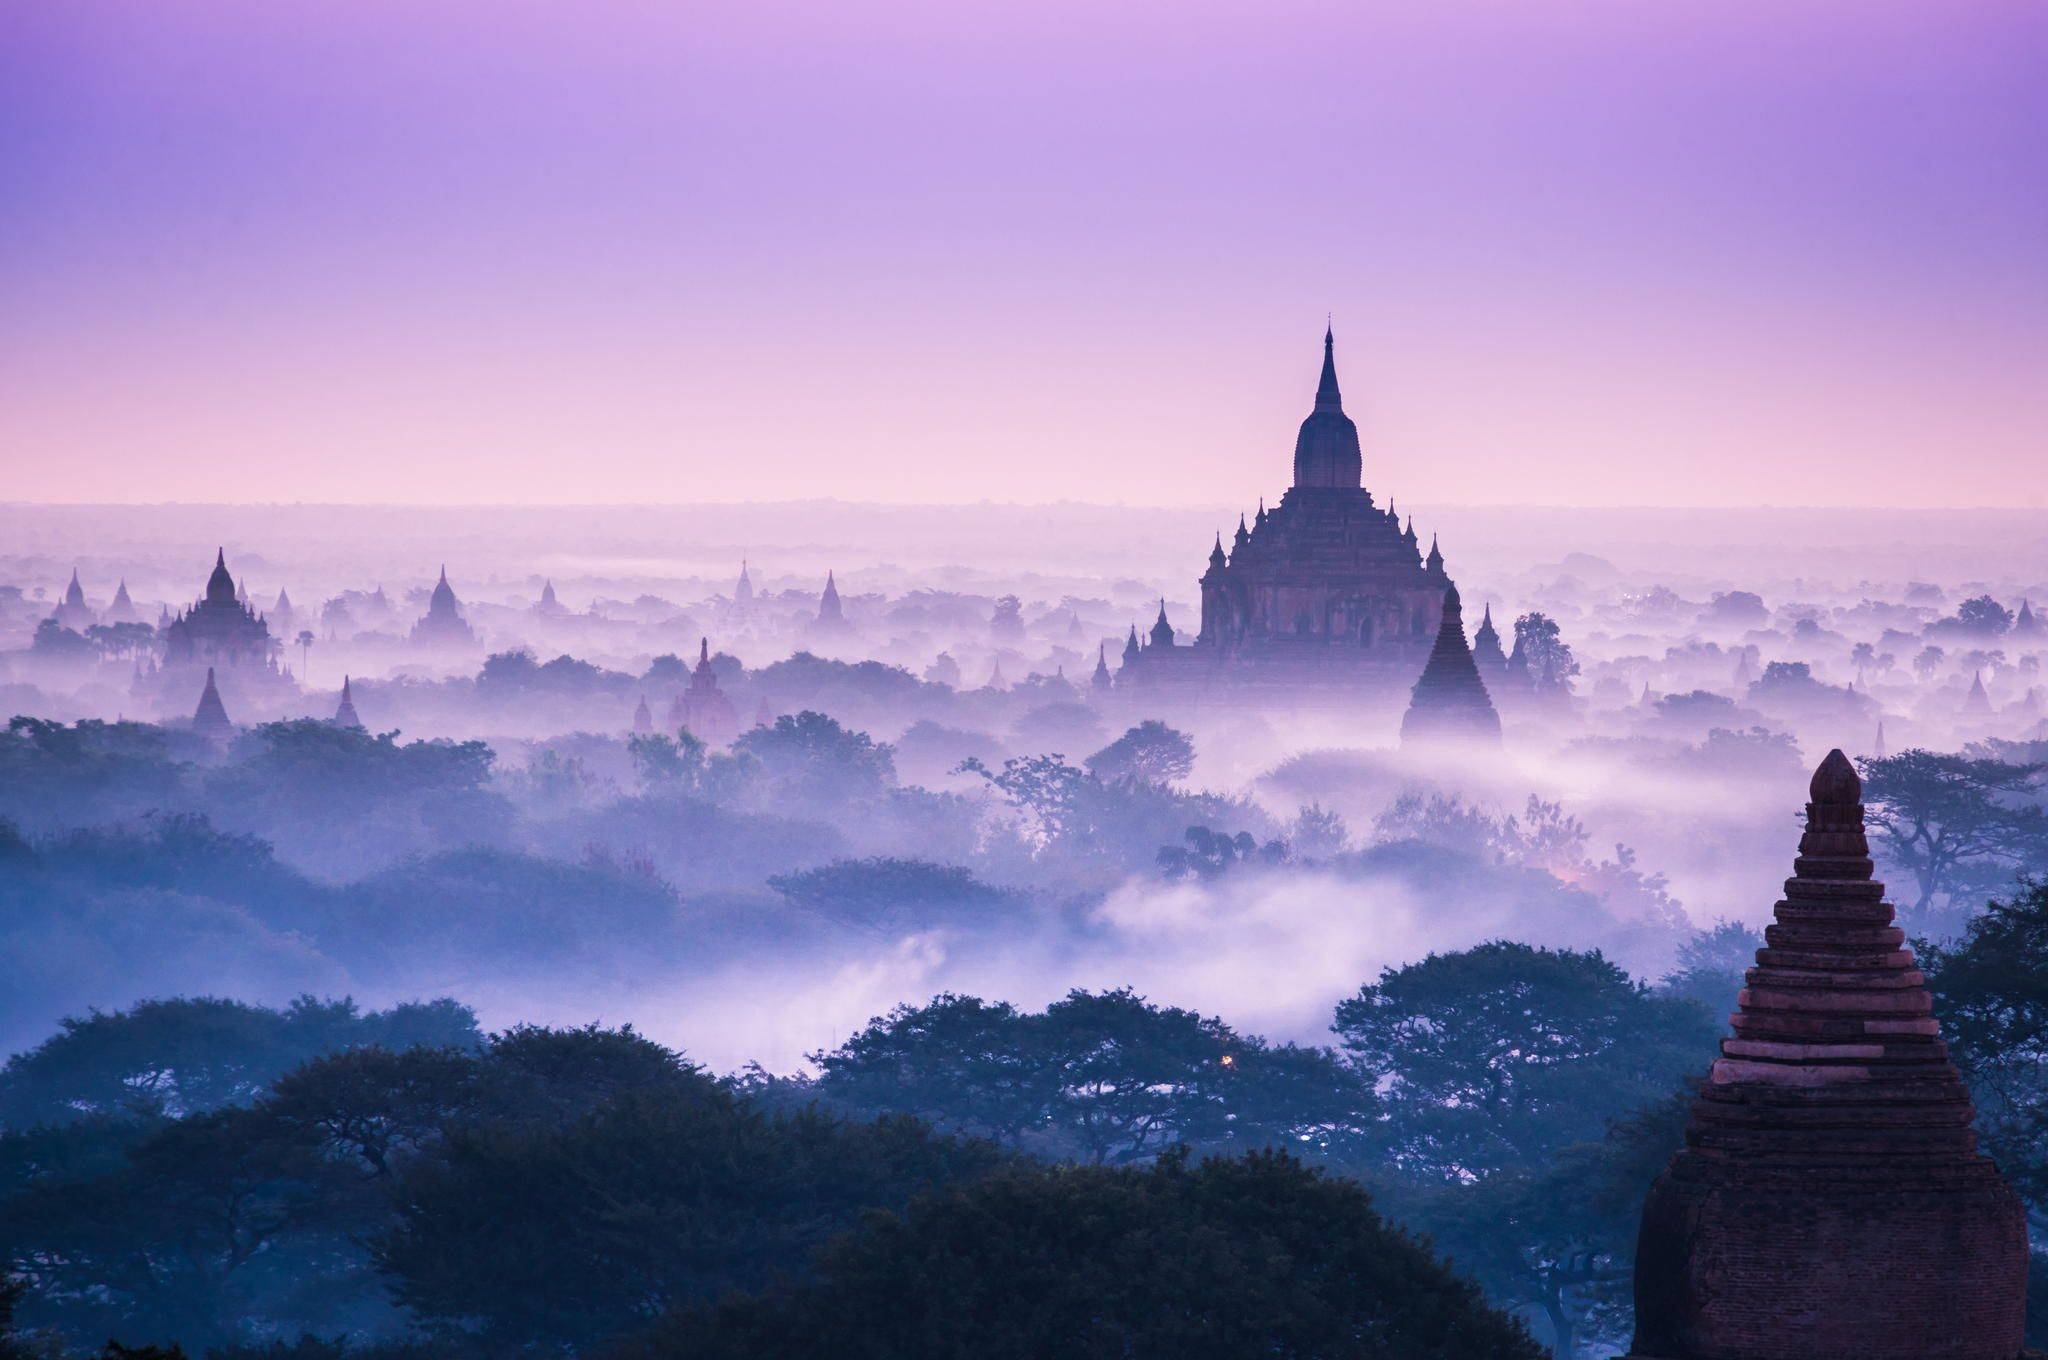 Misty Morning in Bagan by Zay Yar Lin on 500px